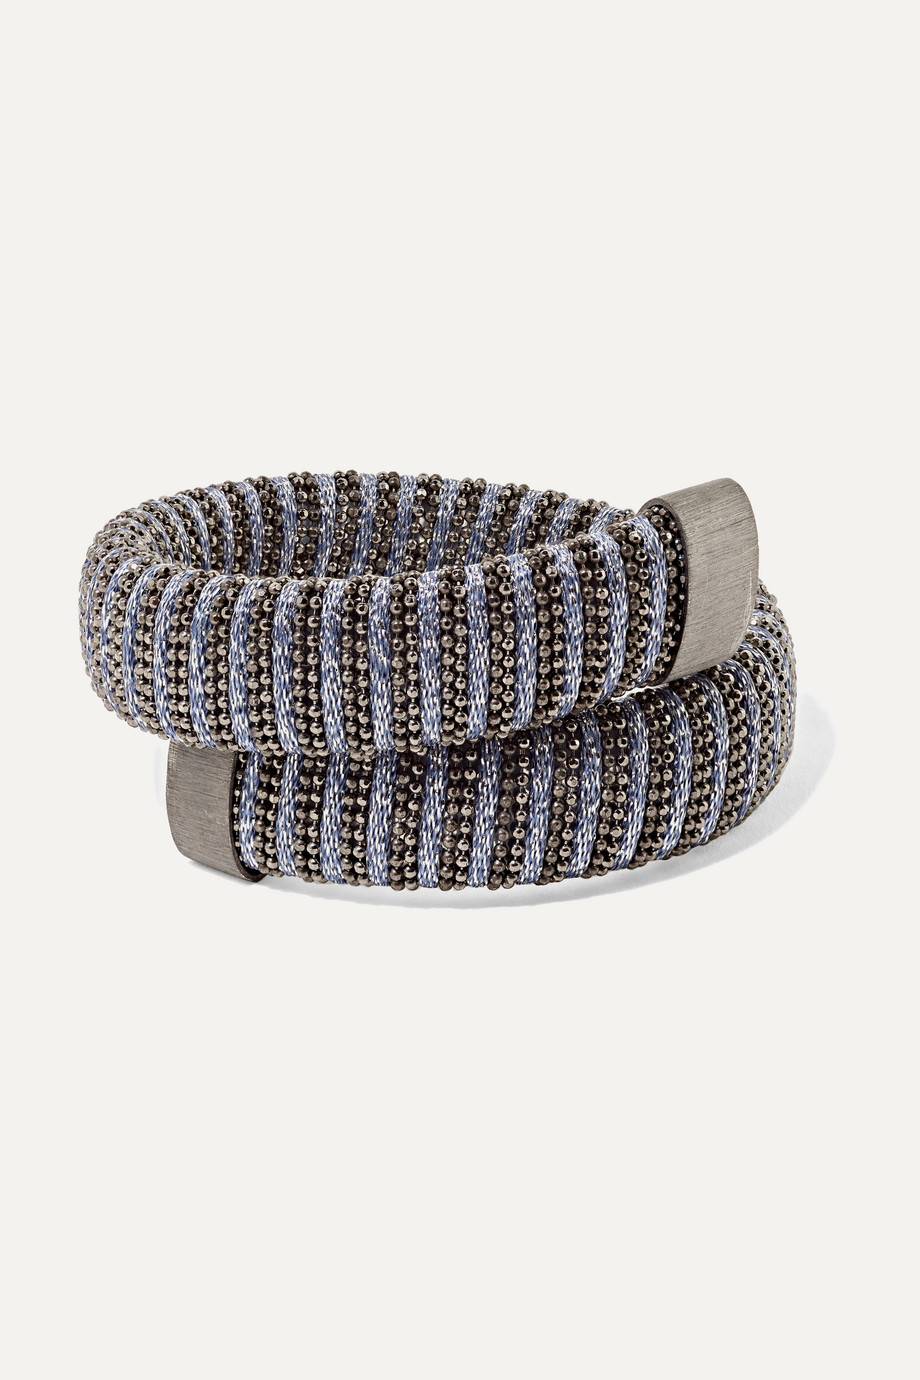 Carolina Bucci Caro silver-plated, sterling silver and Lurex bracelet